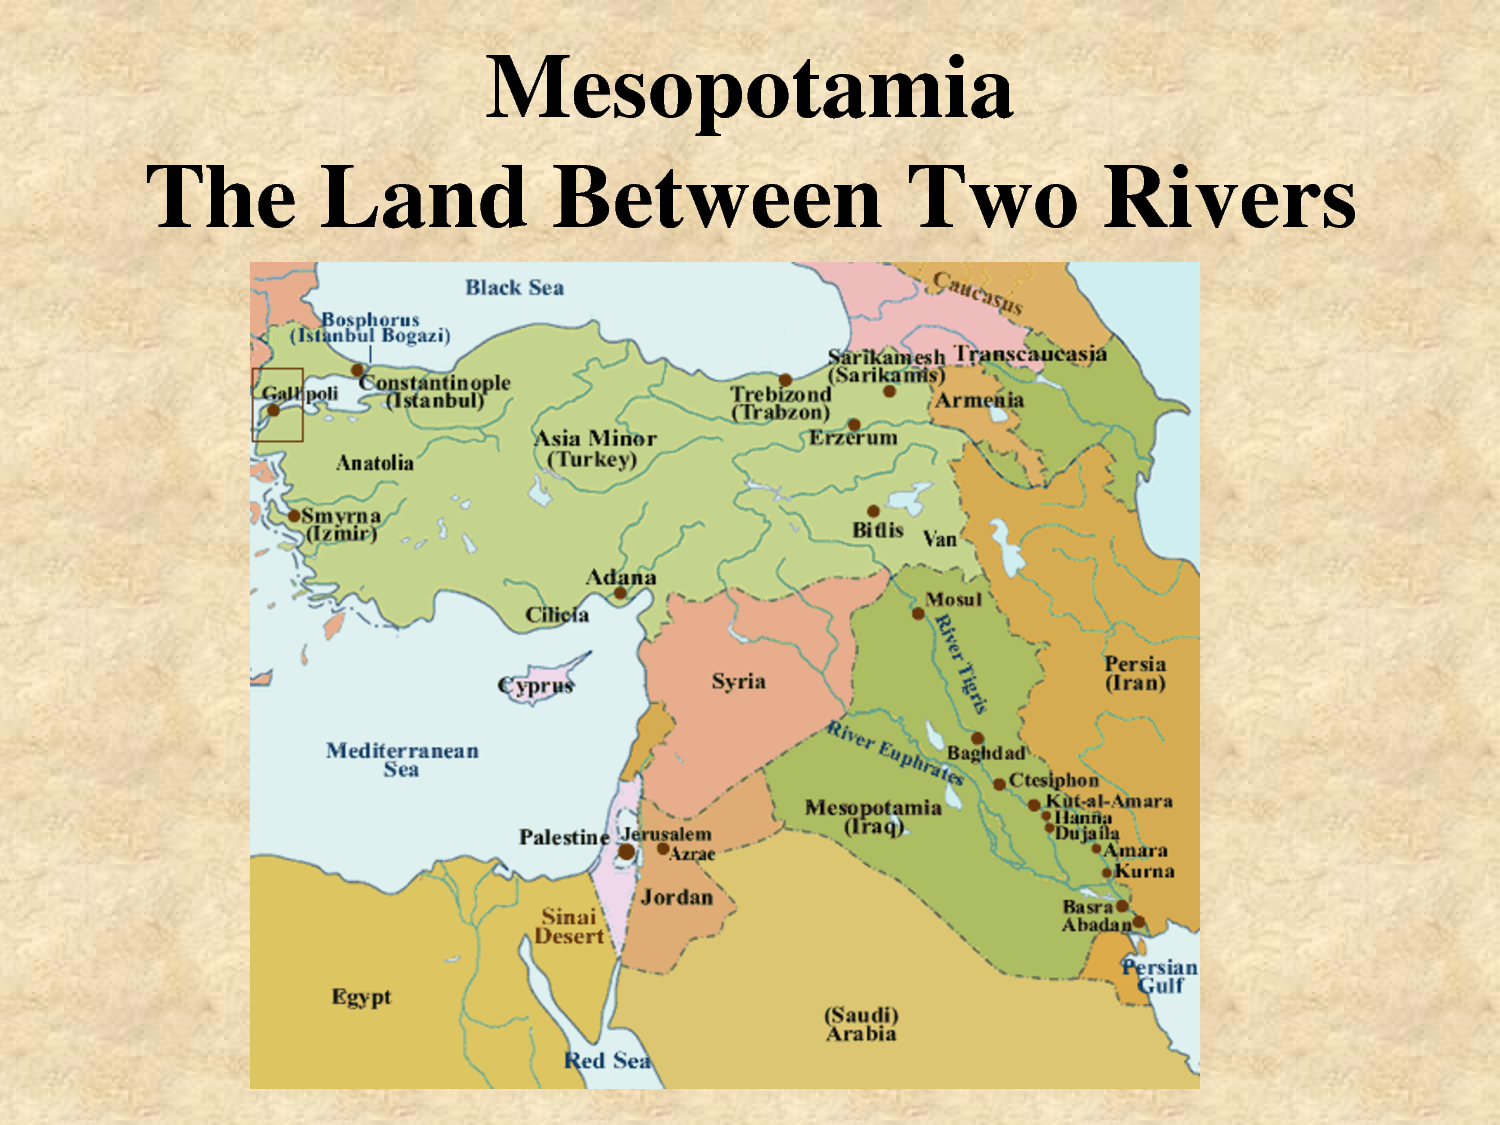 Ancient Mesopotamia Is Included In A Part Of The World That Was - Tigris river map world atlas